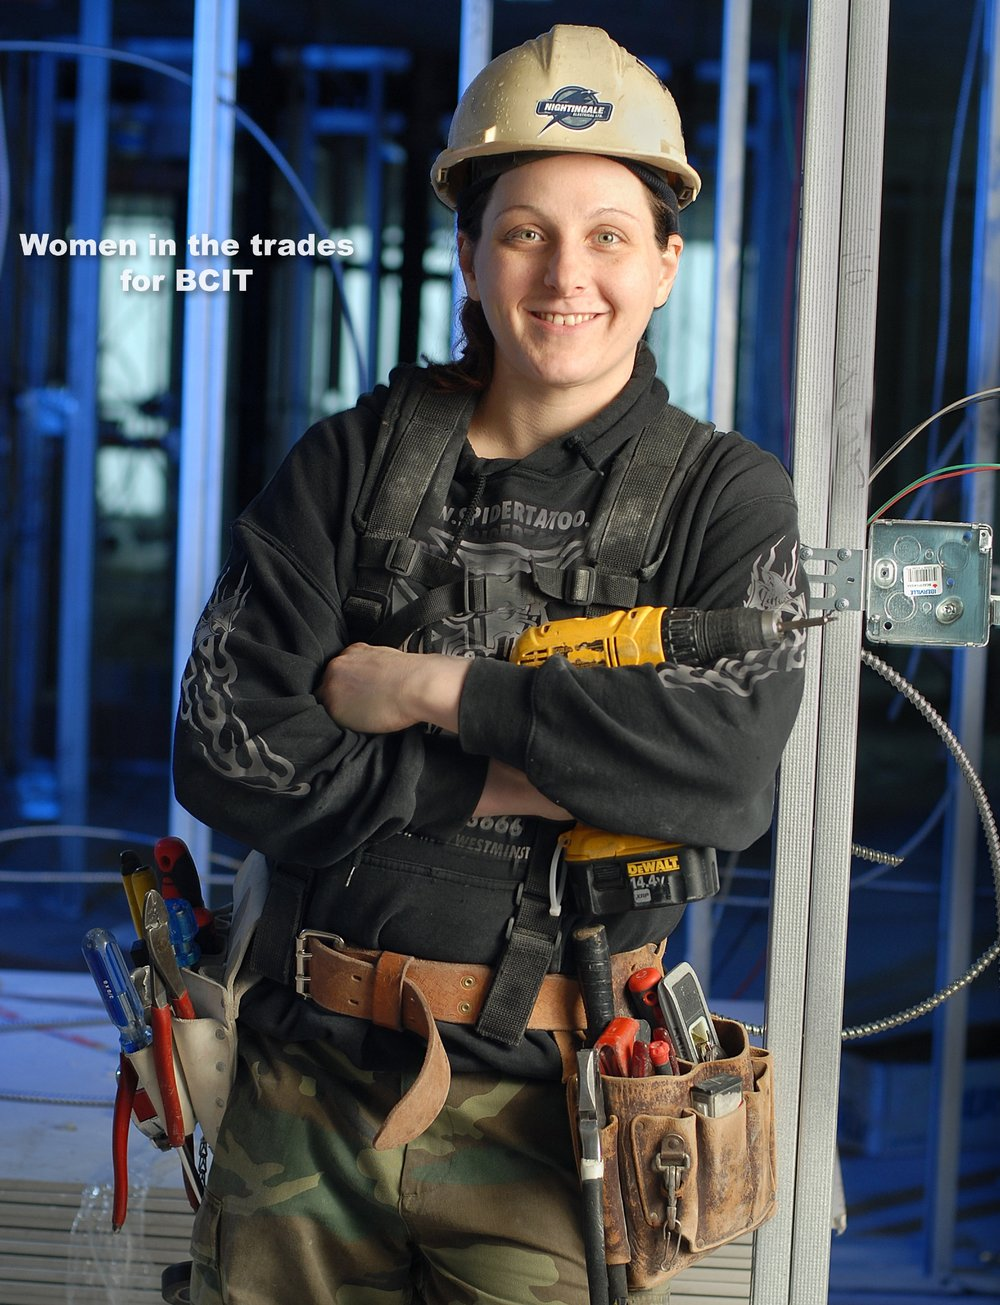 Portfolio - women in the trades.jpg